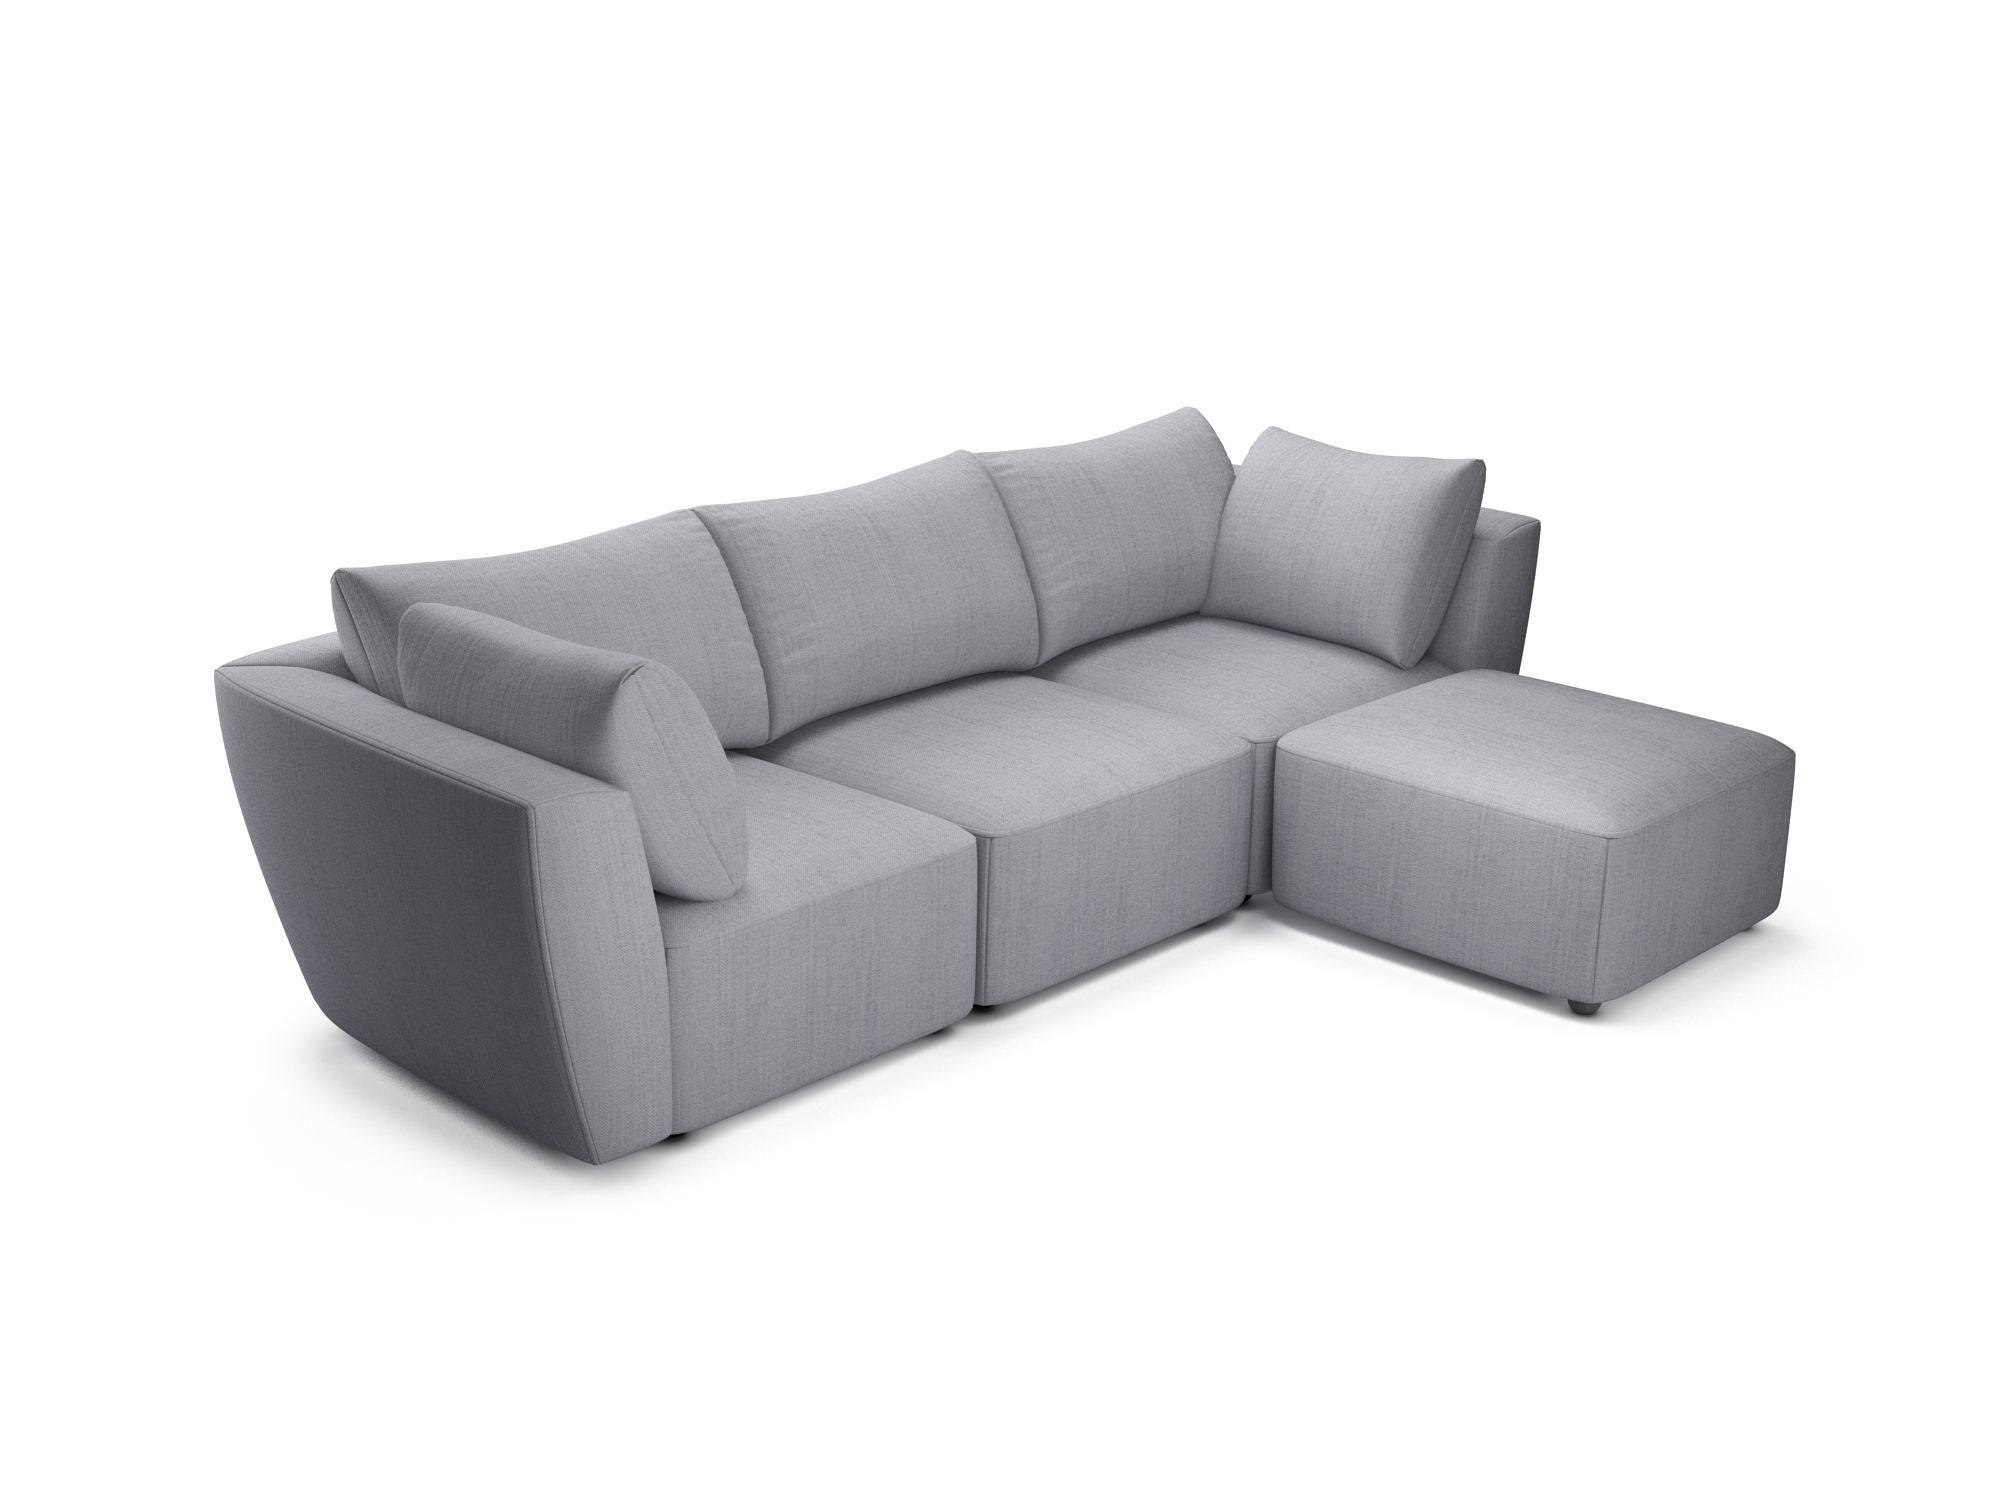 Lottie Grey Sofa